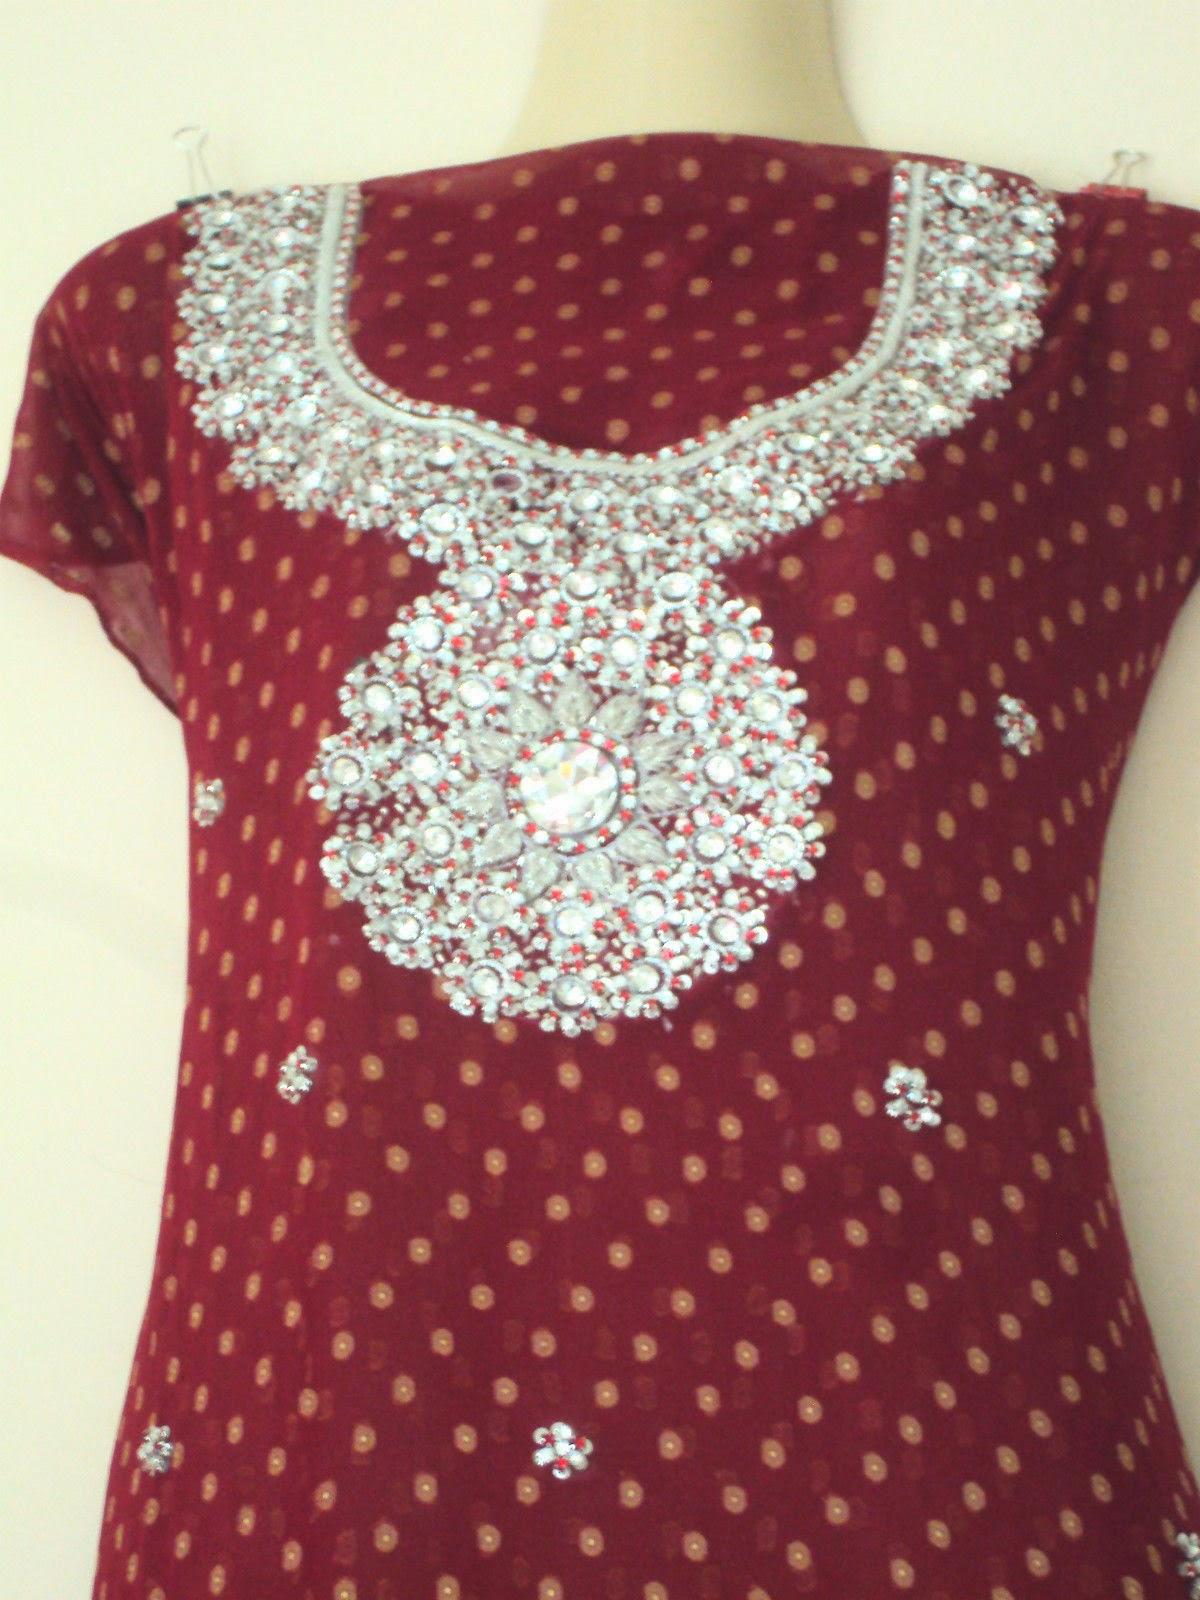 Neck design, neck designs, fashion neck designs, shalwar kameez neck designs, neck dezin, neck desing, neck desi, neck pettern, neck dress, neck dresses, fashion suits, fashion brow.